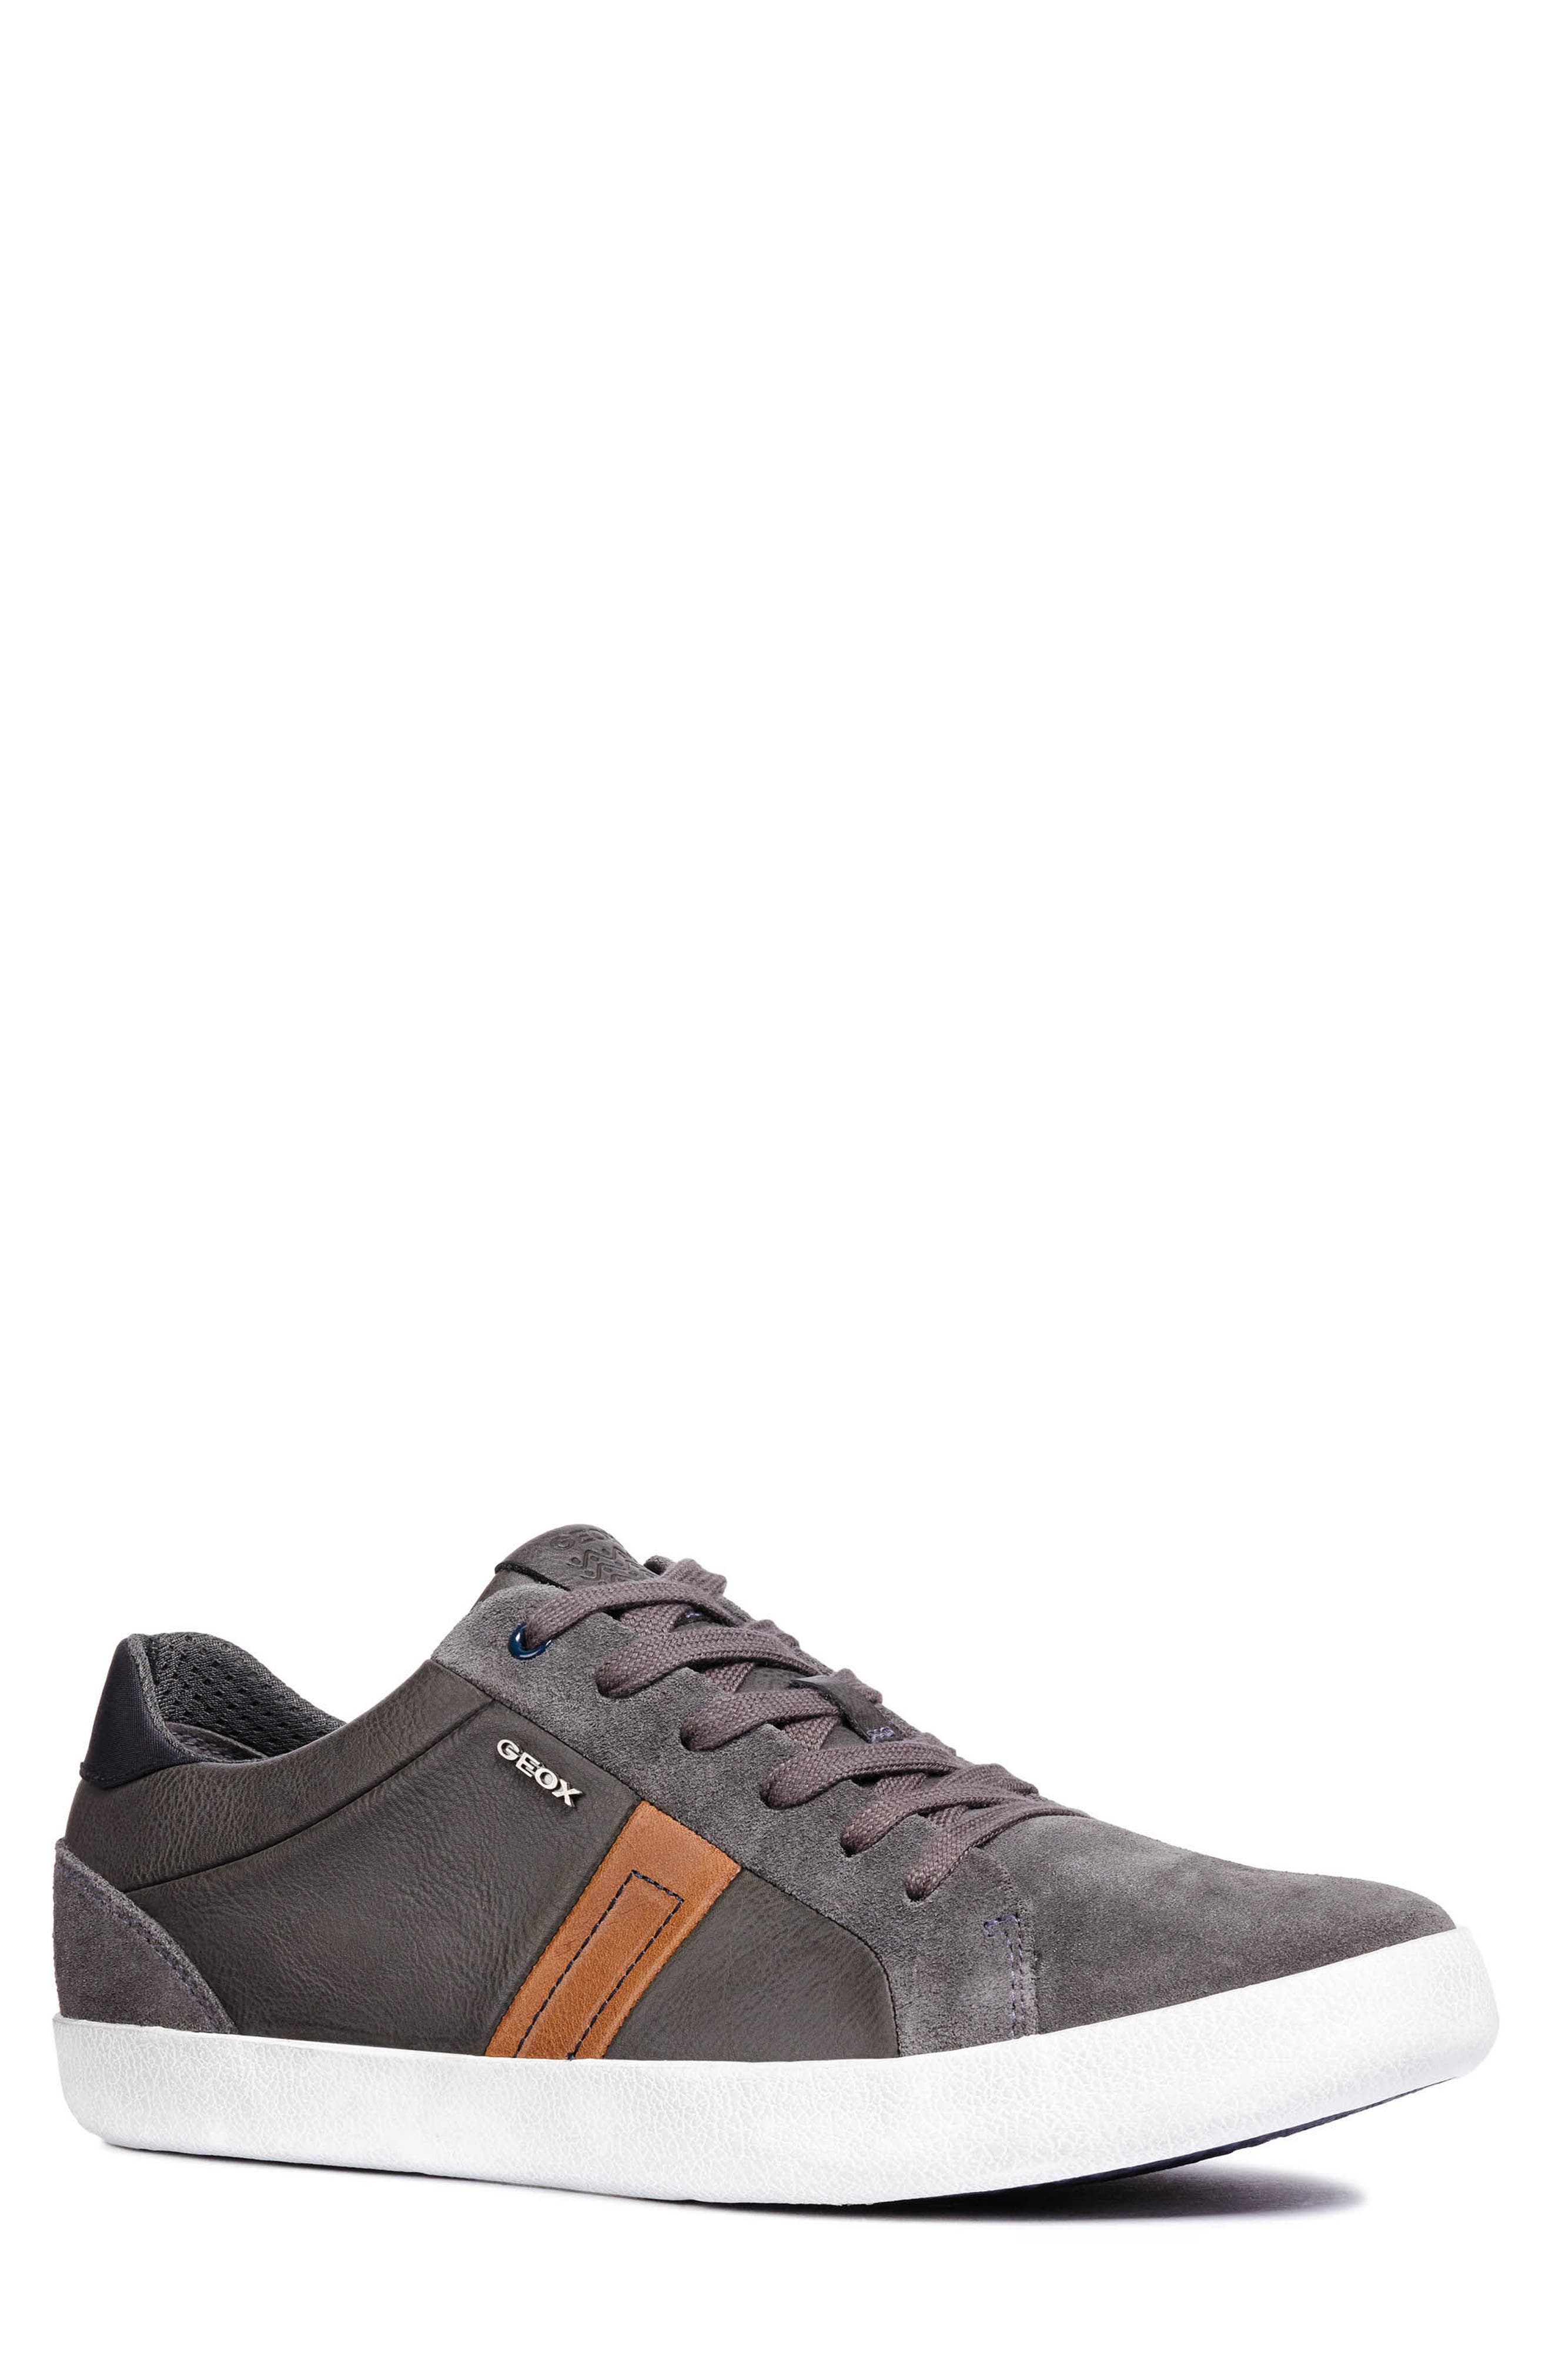 Box 40 Low Top Sneaker,                         Main,                         color, ANTHRACITE LEATHER